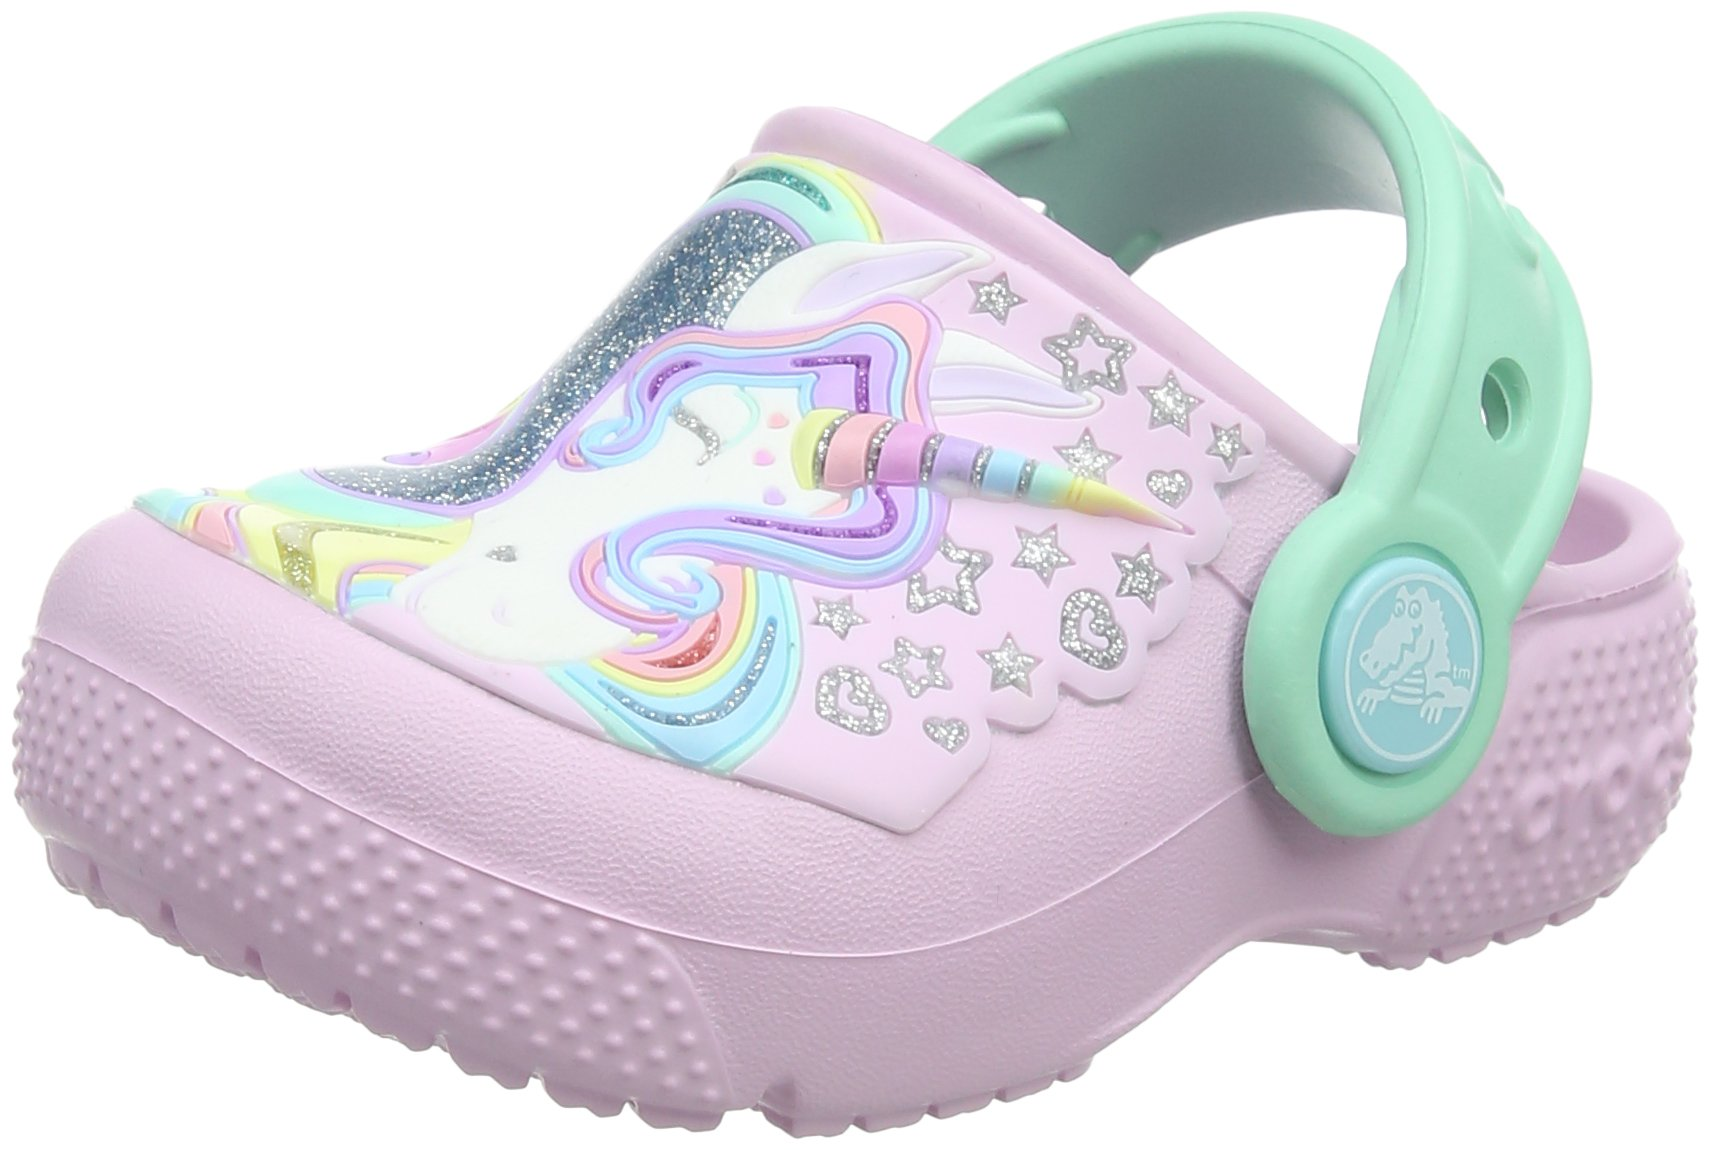 Crocs Crocband Fun Lab Graphic Light-Up Clog, Ballerina Pink/New Mint, 9 M US Toddler